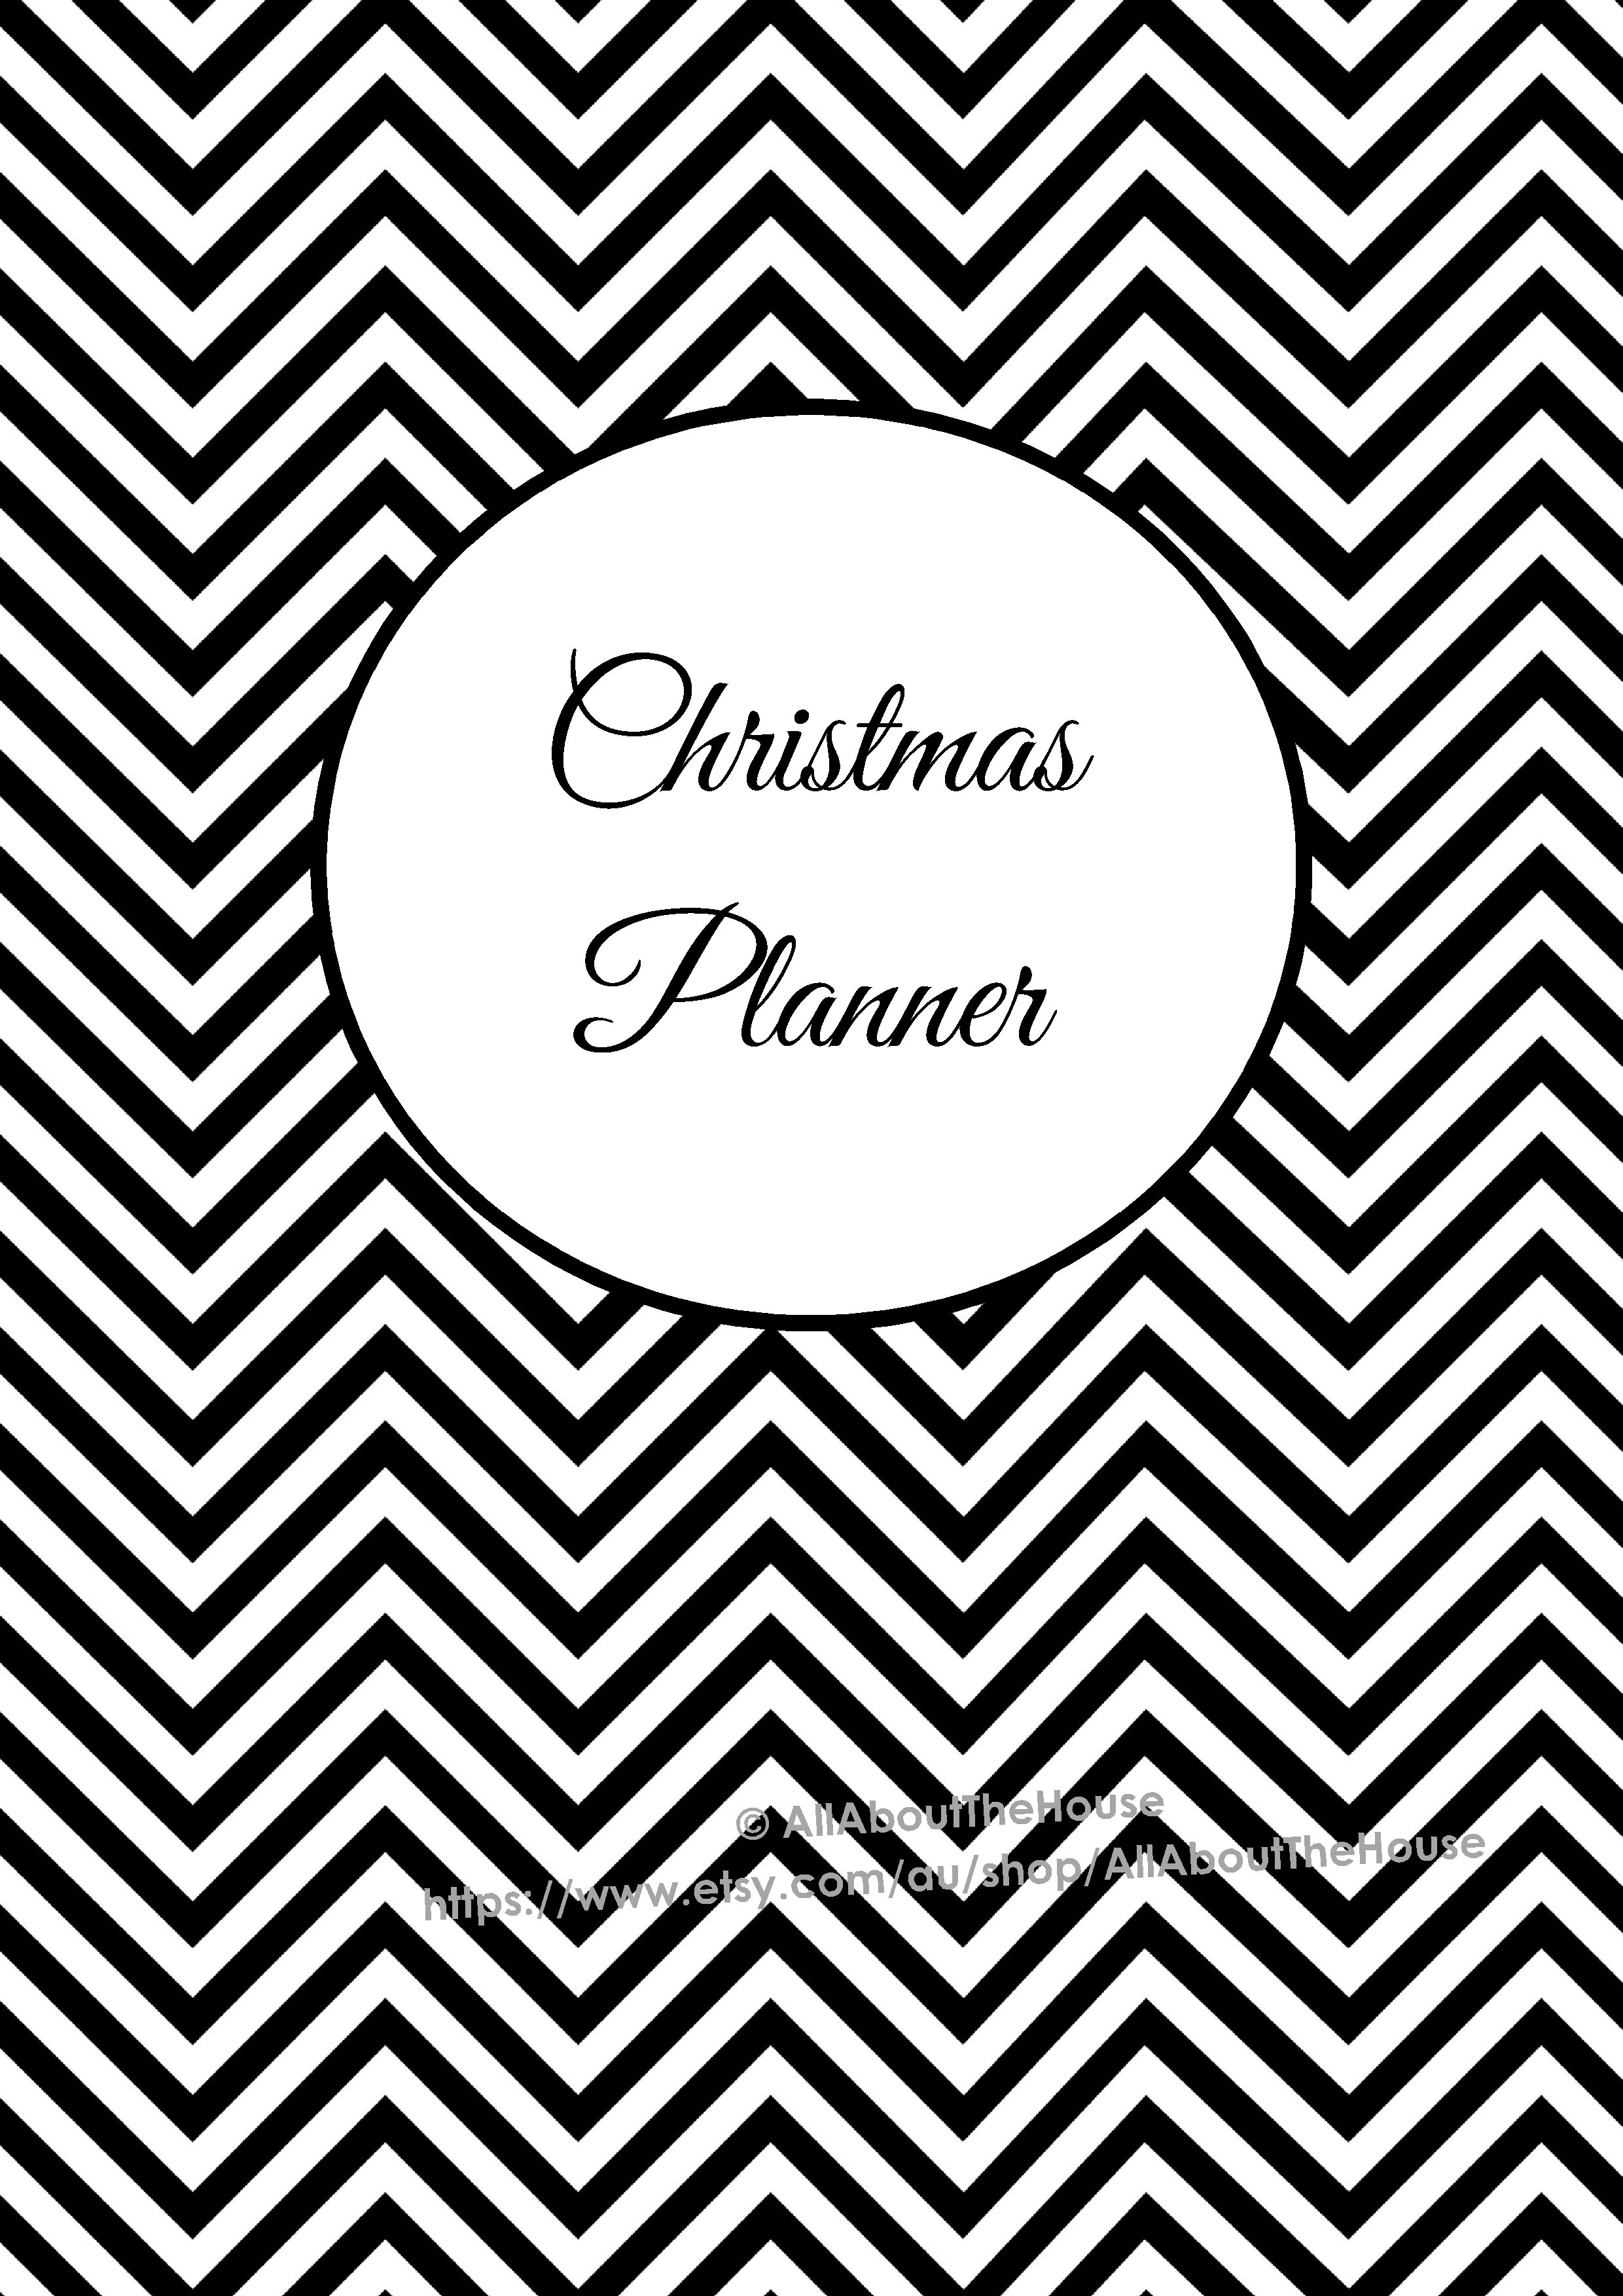 5 Images of Printable Christmas Planner Cover